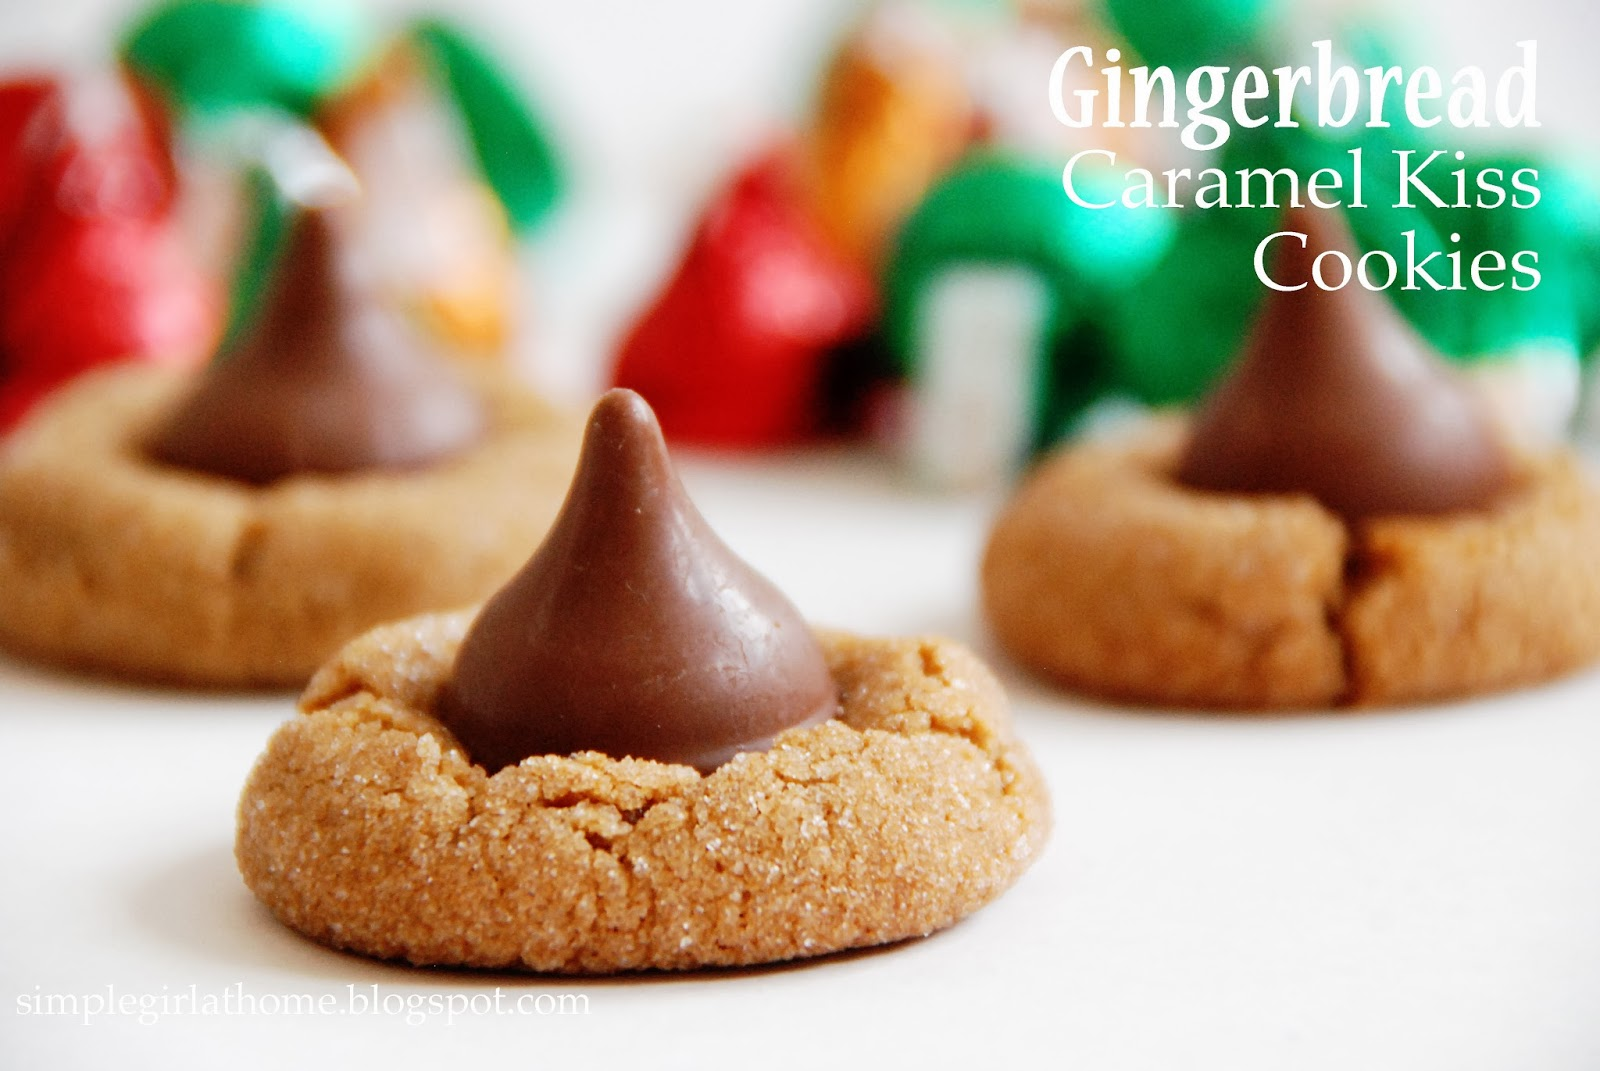 Simple Girl: Gingerbread Caramel Kiss Cookies (2-Ingredients!)